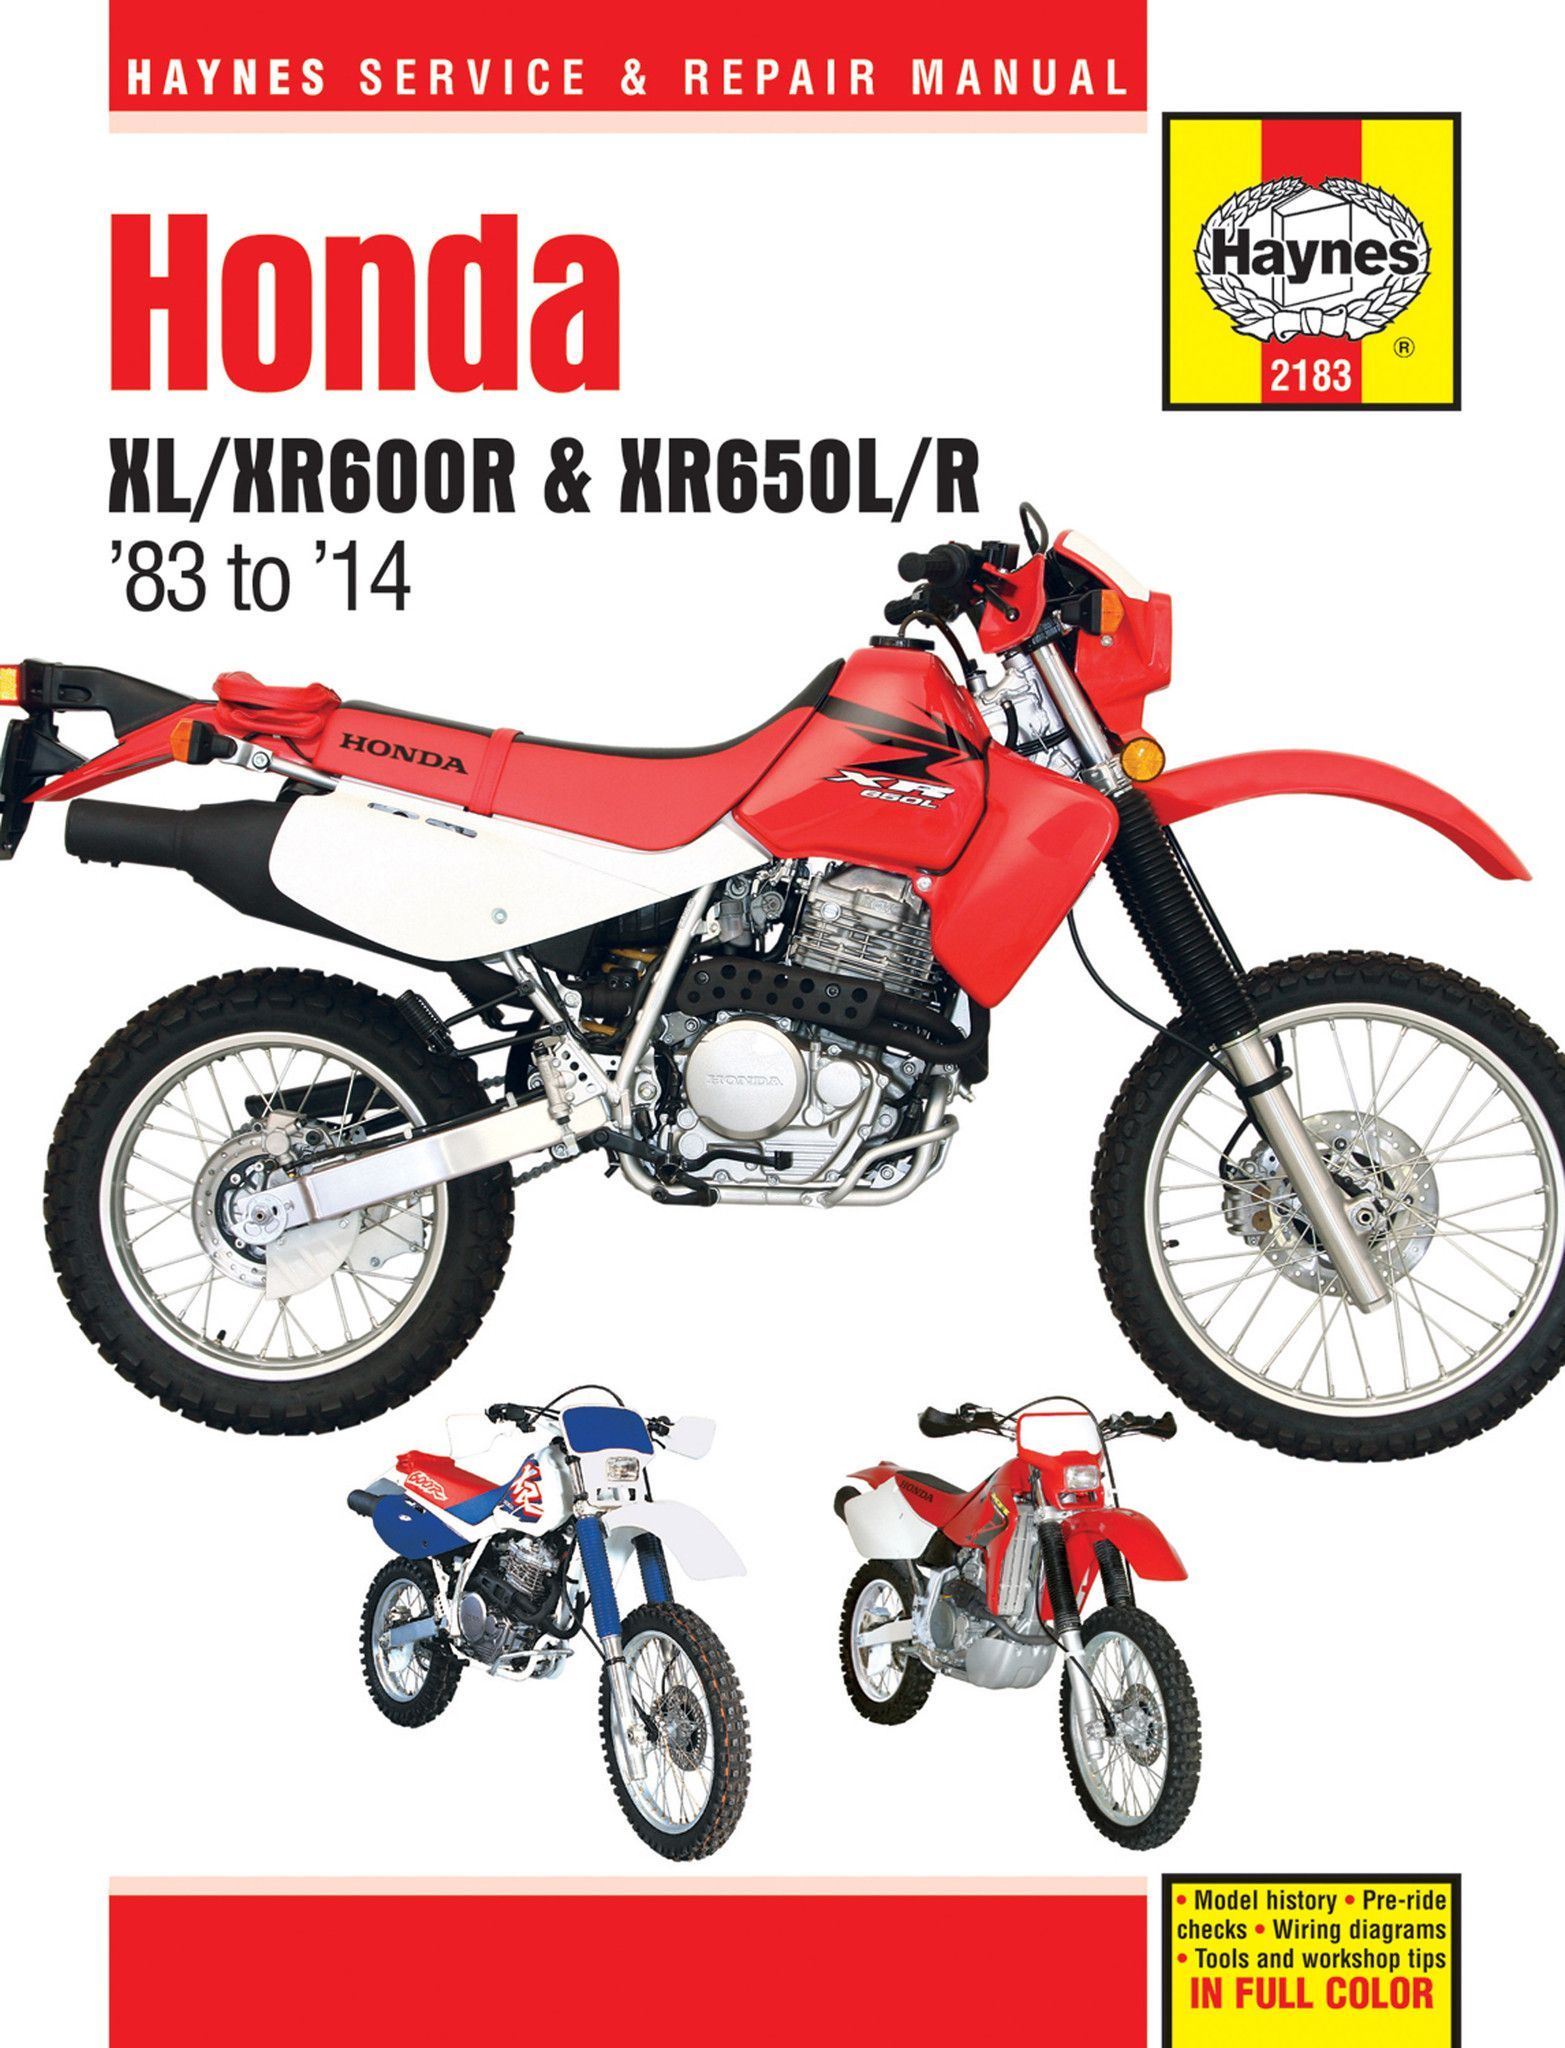 Haynes M2183 Service Repair Manual For 1983 14 Honda Xl Xr600r Xr350r Wiring Diagram Part Number Step By Procedures Easy To Follow Photos Complete Troubleshooting Section Valuable Short Cuts